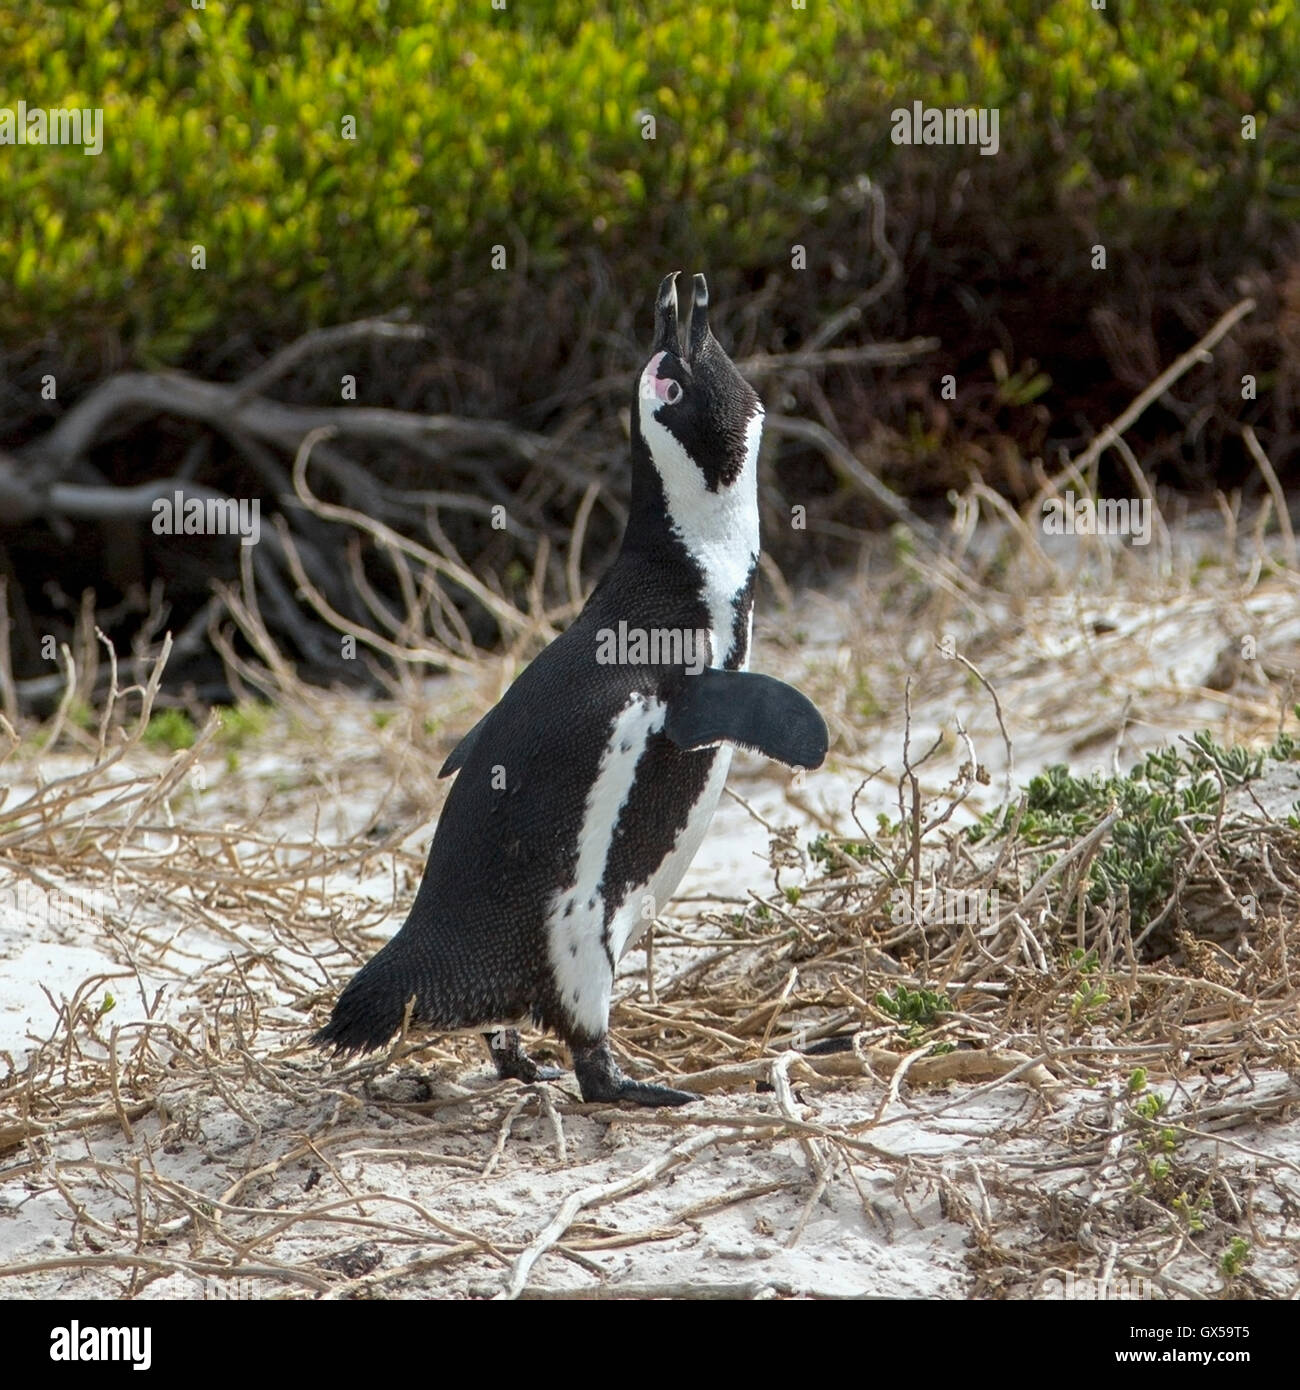 An African Penguin walking along the beach in Boulder Beach, South Africa - Stock Image